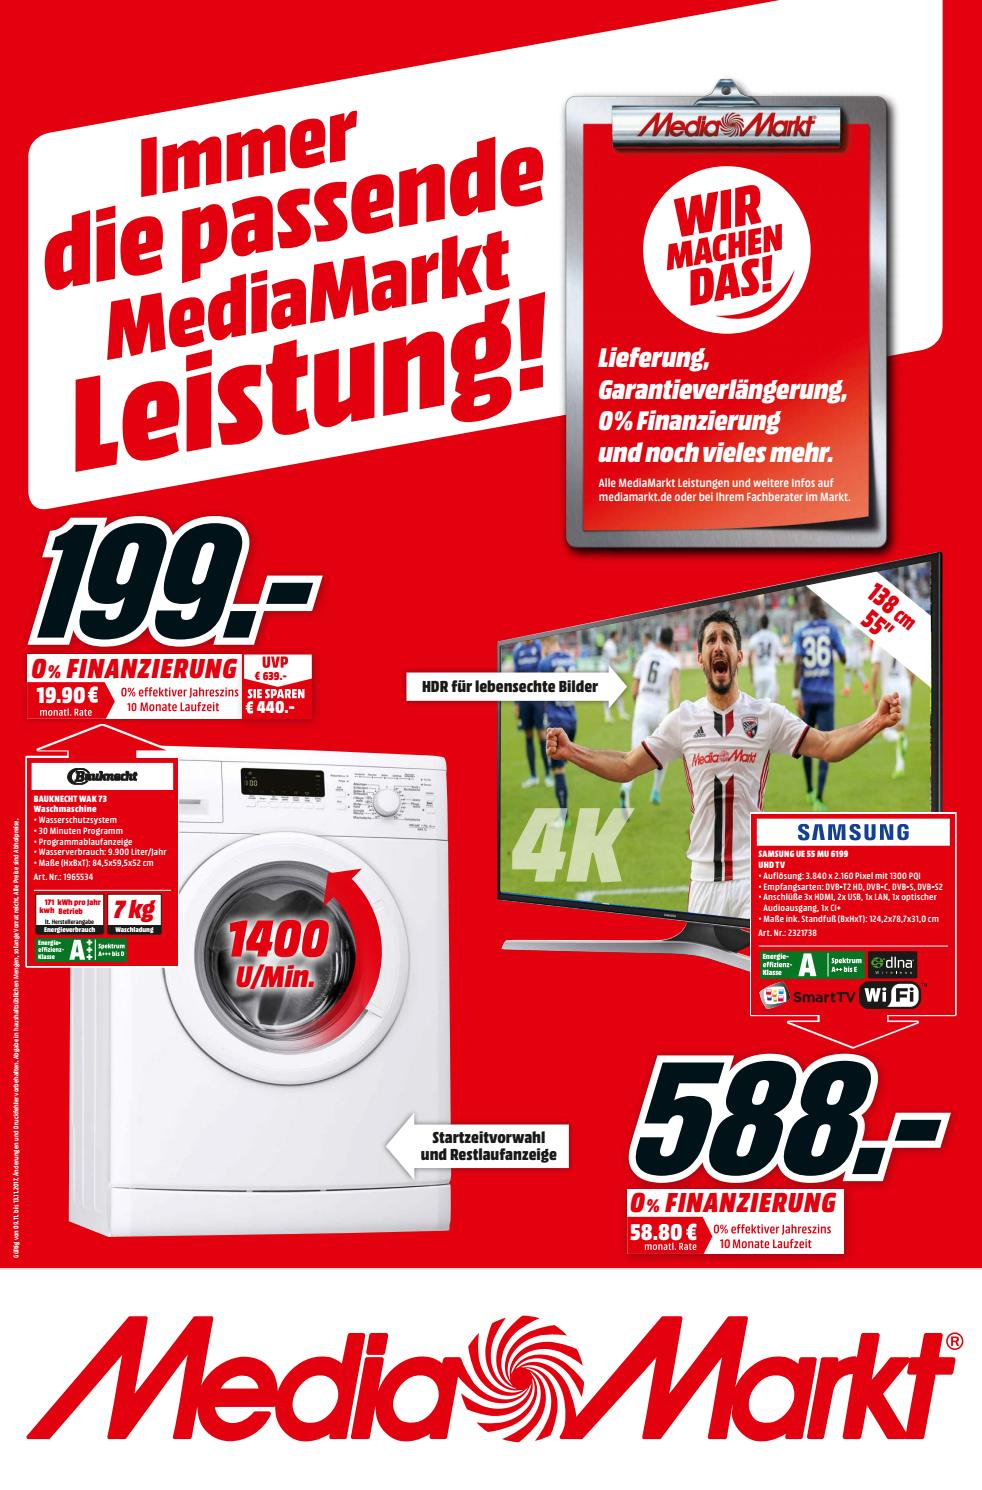 Induktions Einbauherd Set Excellent Aeg Eemx A Literjahr With Aeg Media Markt 09 11 2017 By Märkische Onlinezeitung Issuu